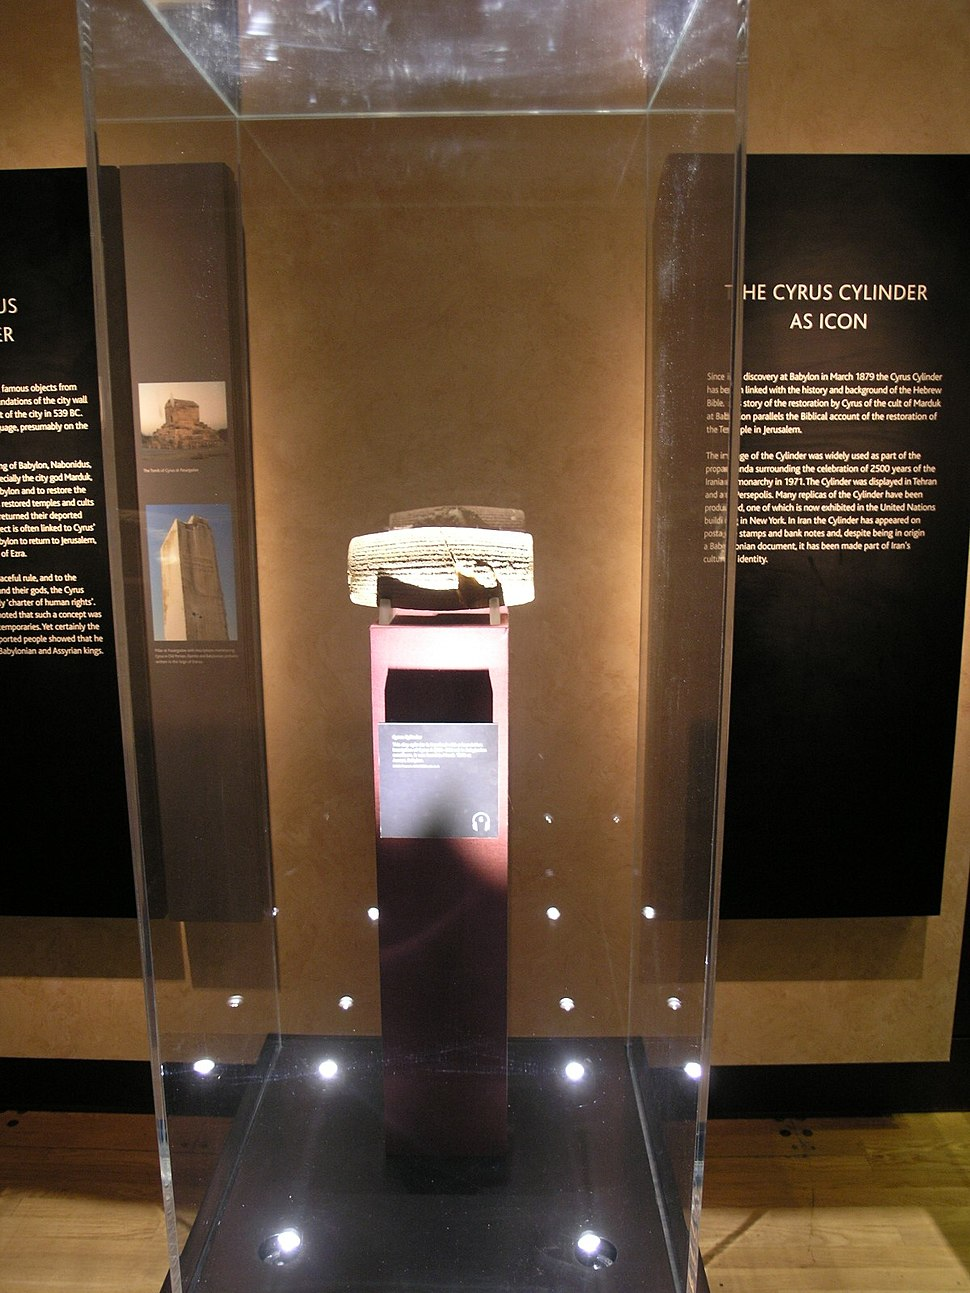 BM; ANE - Forgotten Empire Exhibition, The Cyrus Cylinder (Room 5)